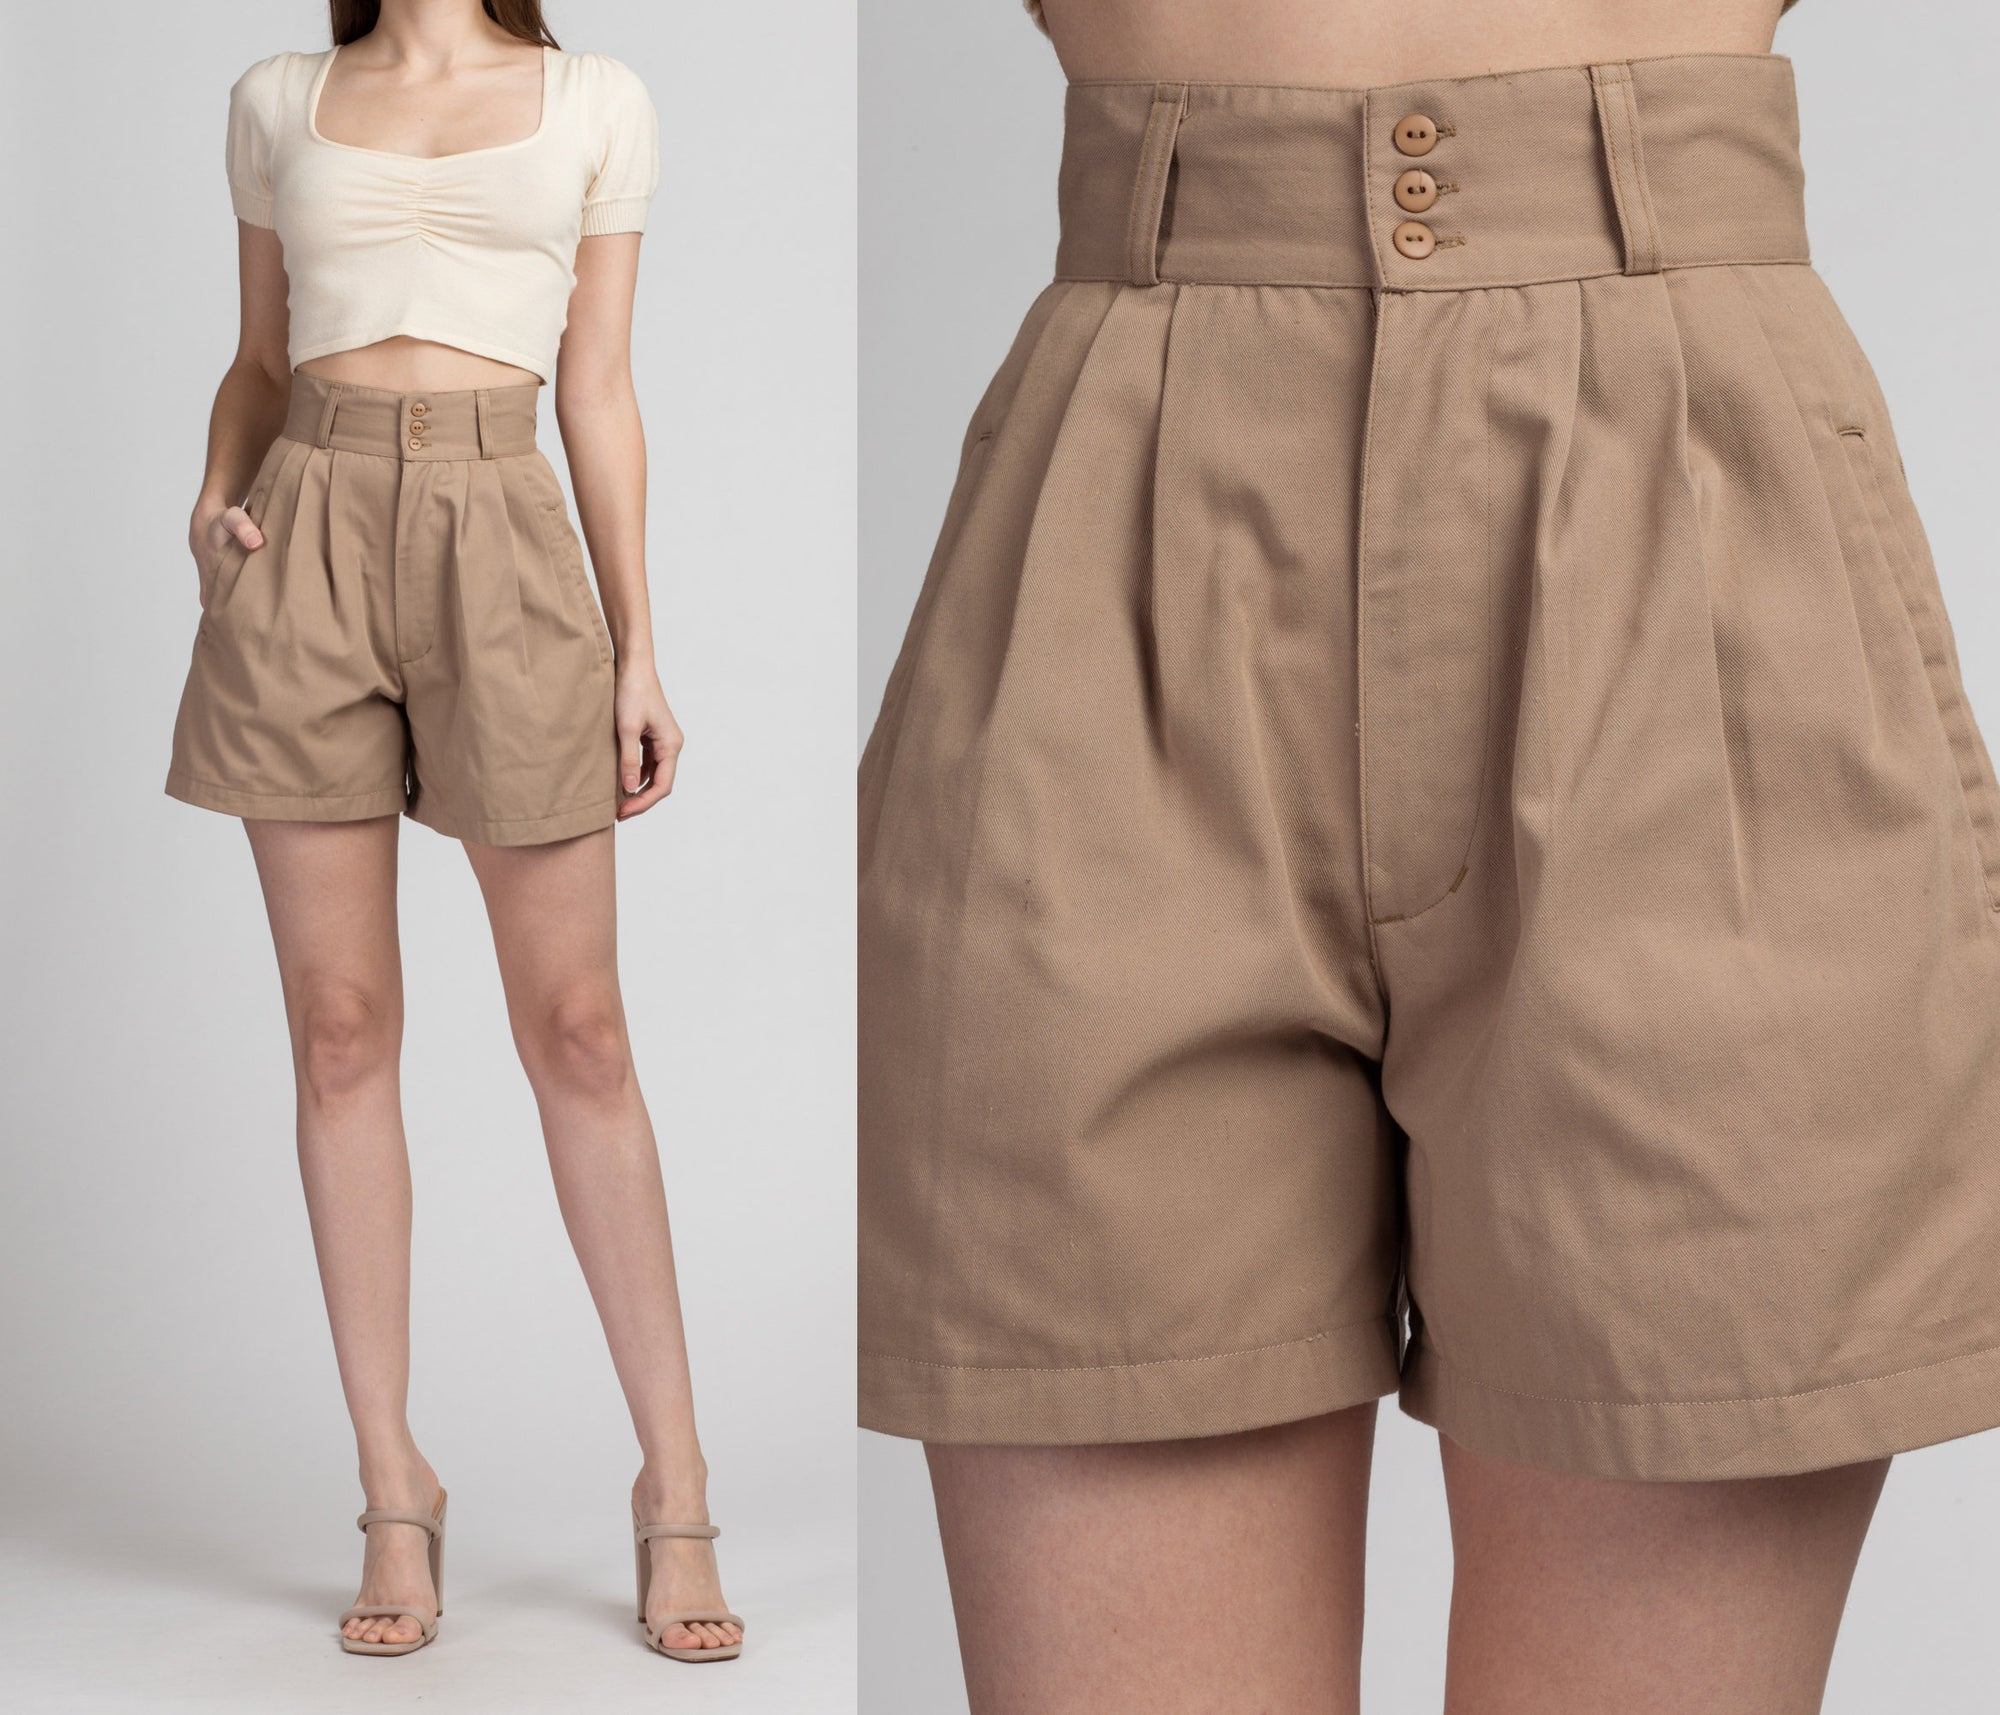 90s High Waist Khaki Shorts - Extra Small, 25"